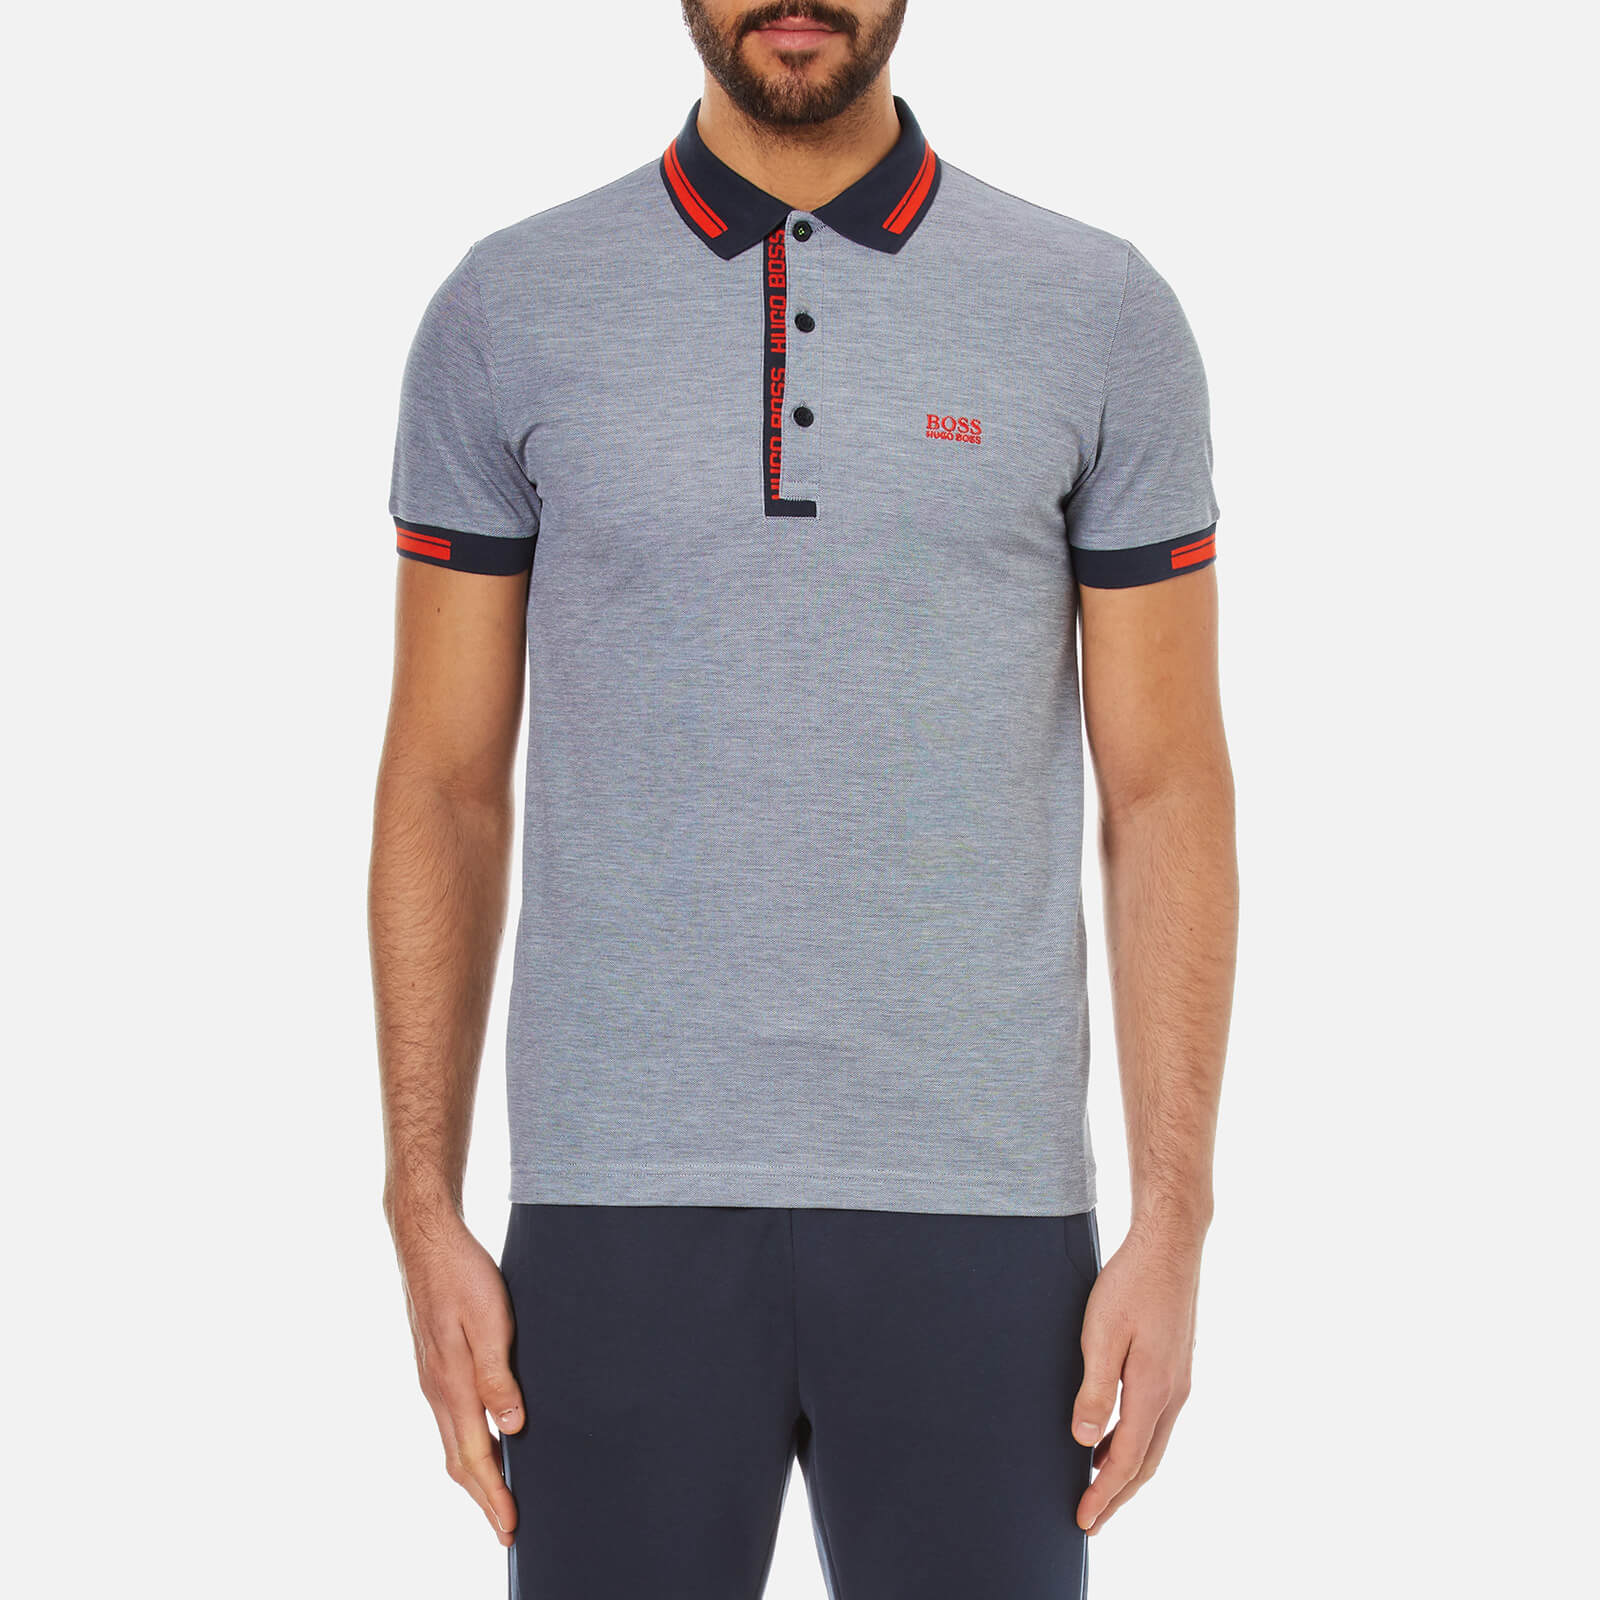 9ff2d49e2 BOSS Green Men's Paule 4 Collar Detail Polo Shirt - Blue - Free UK Delivery  over £50